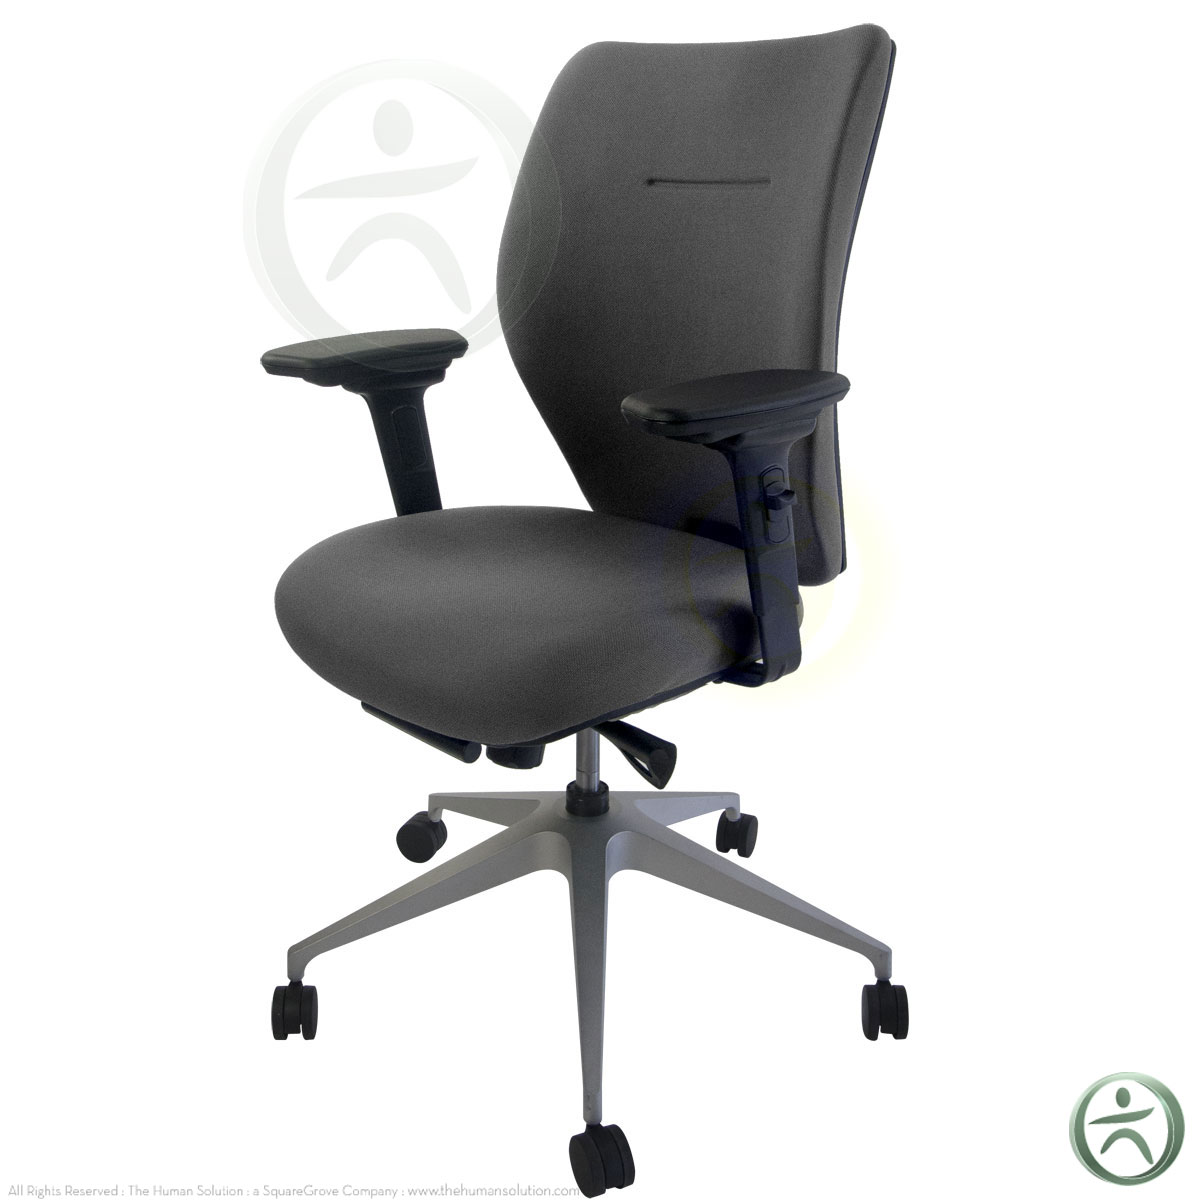 Raynor Chairs Raynor Eurotech Evo Chair Shop Executive Task Chairs